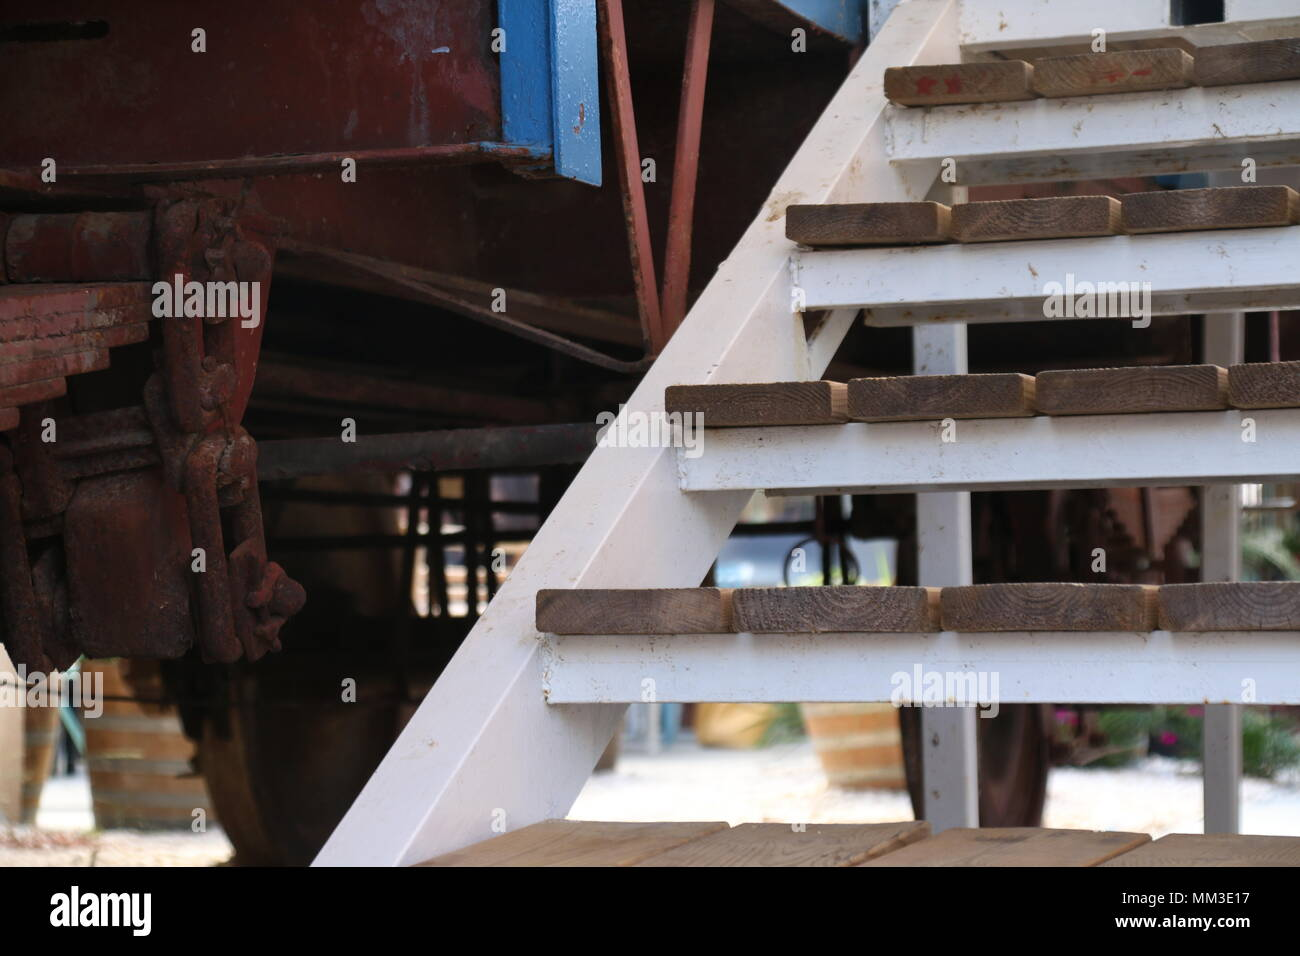 An old railroad car and stairs - Stock Image